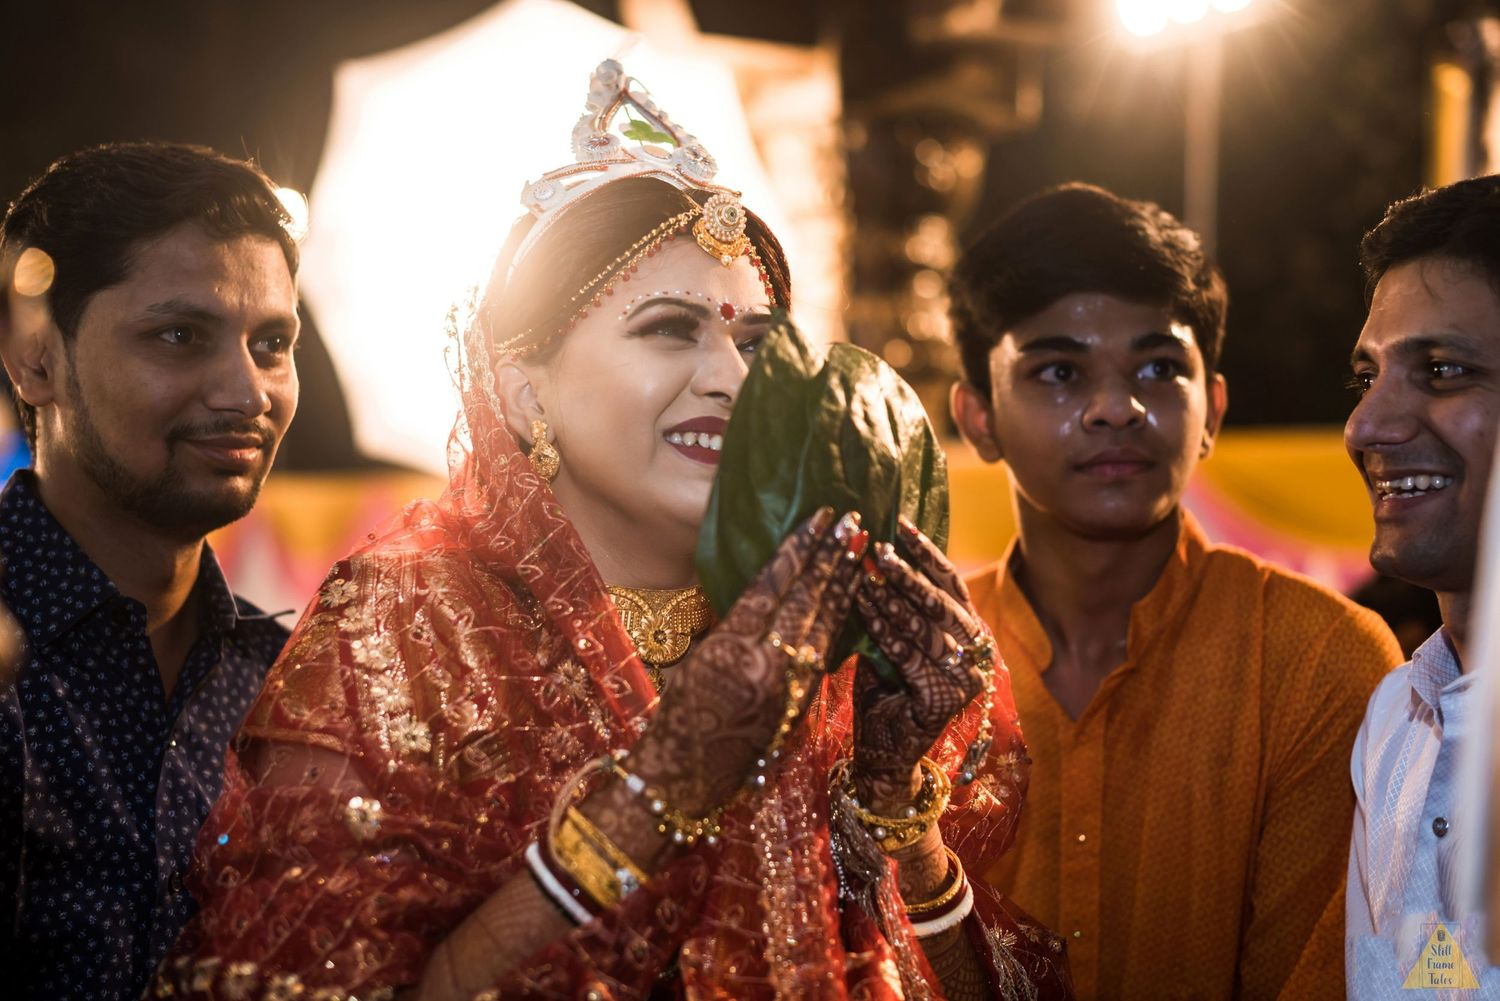 Brothers carry their sister on her wedding day in a bengali wedding ritual